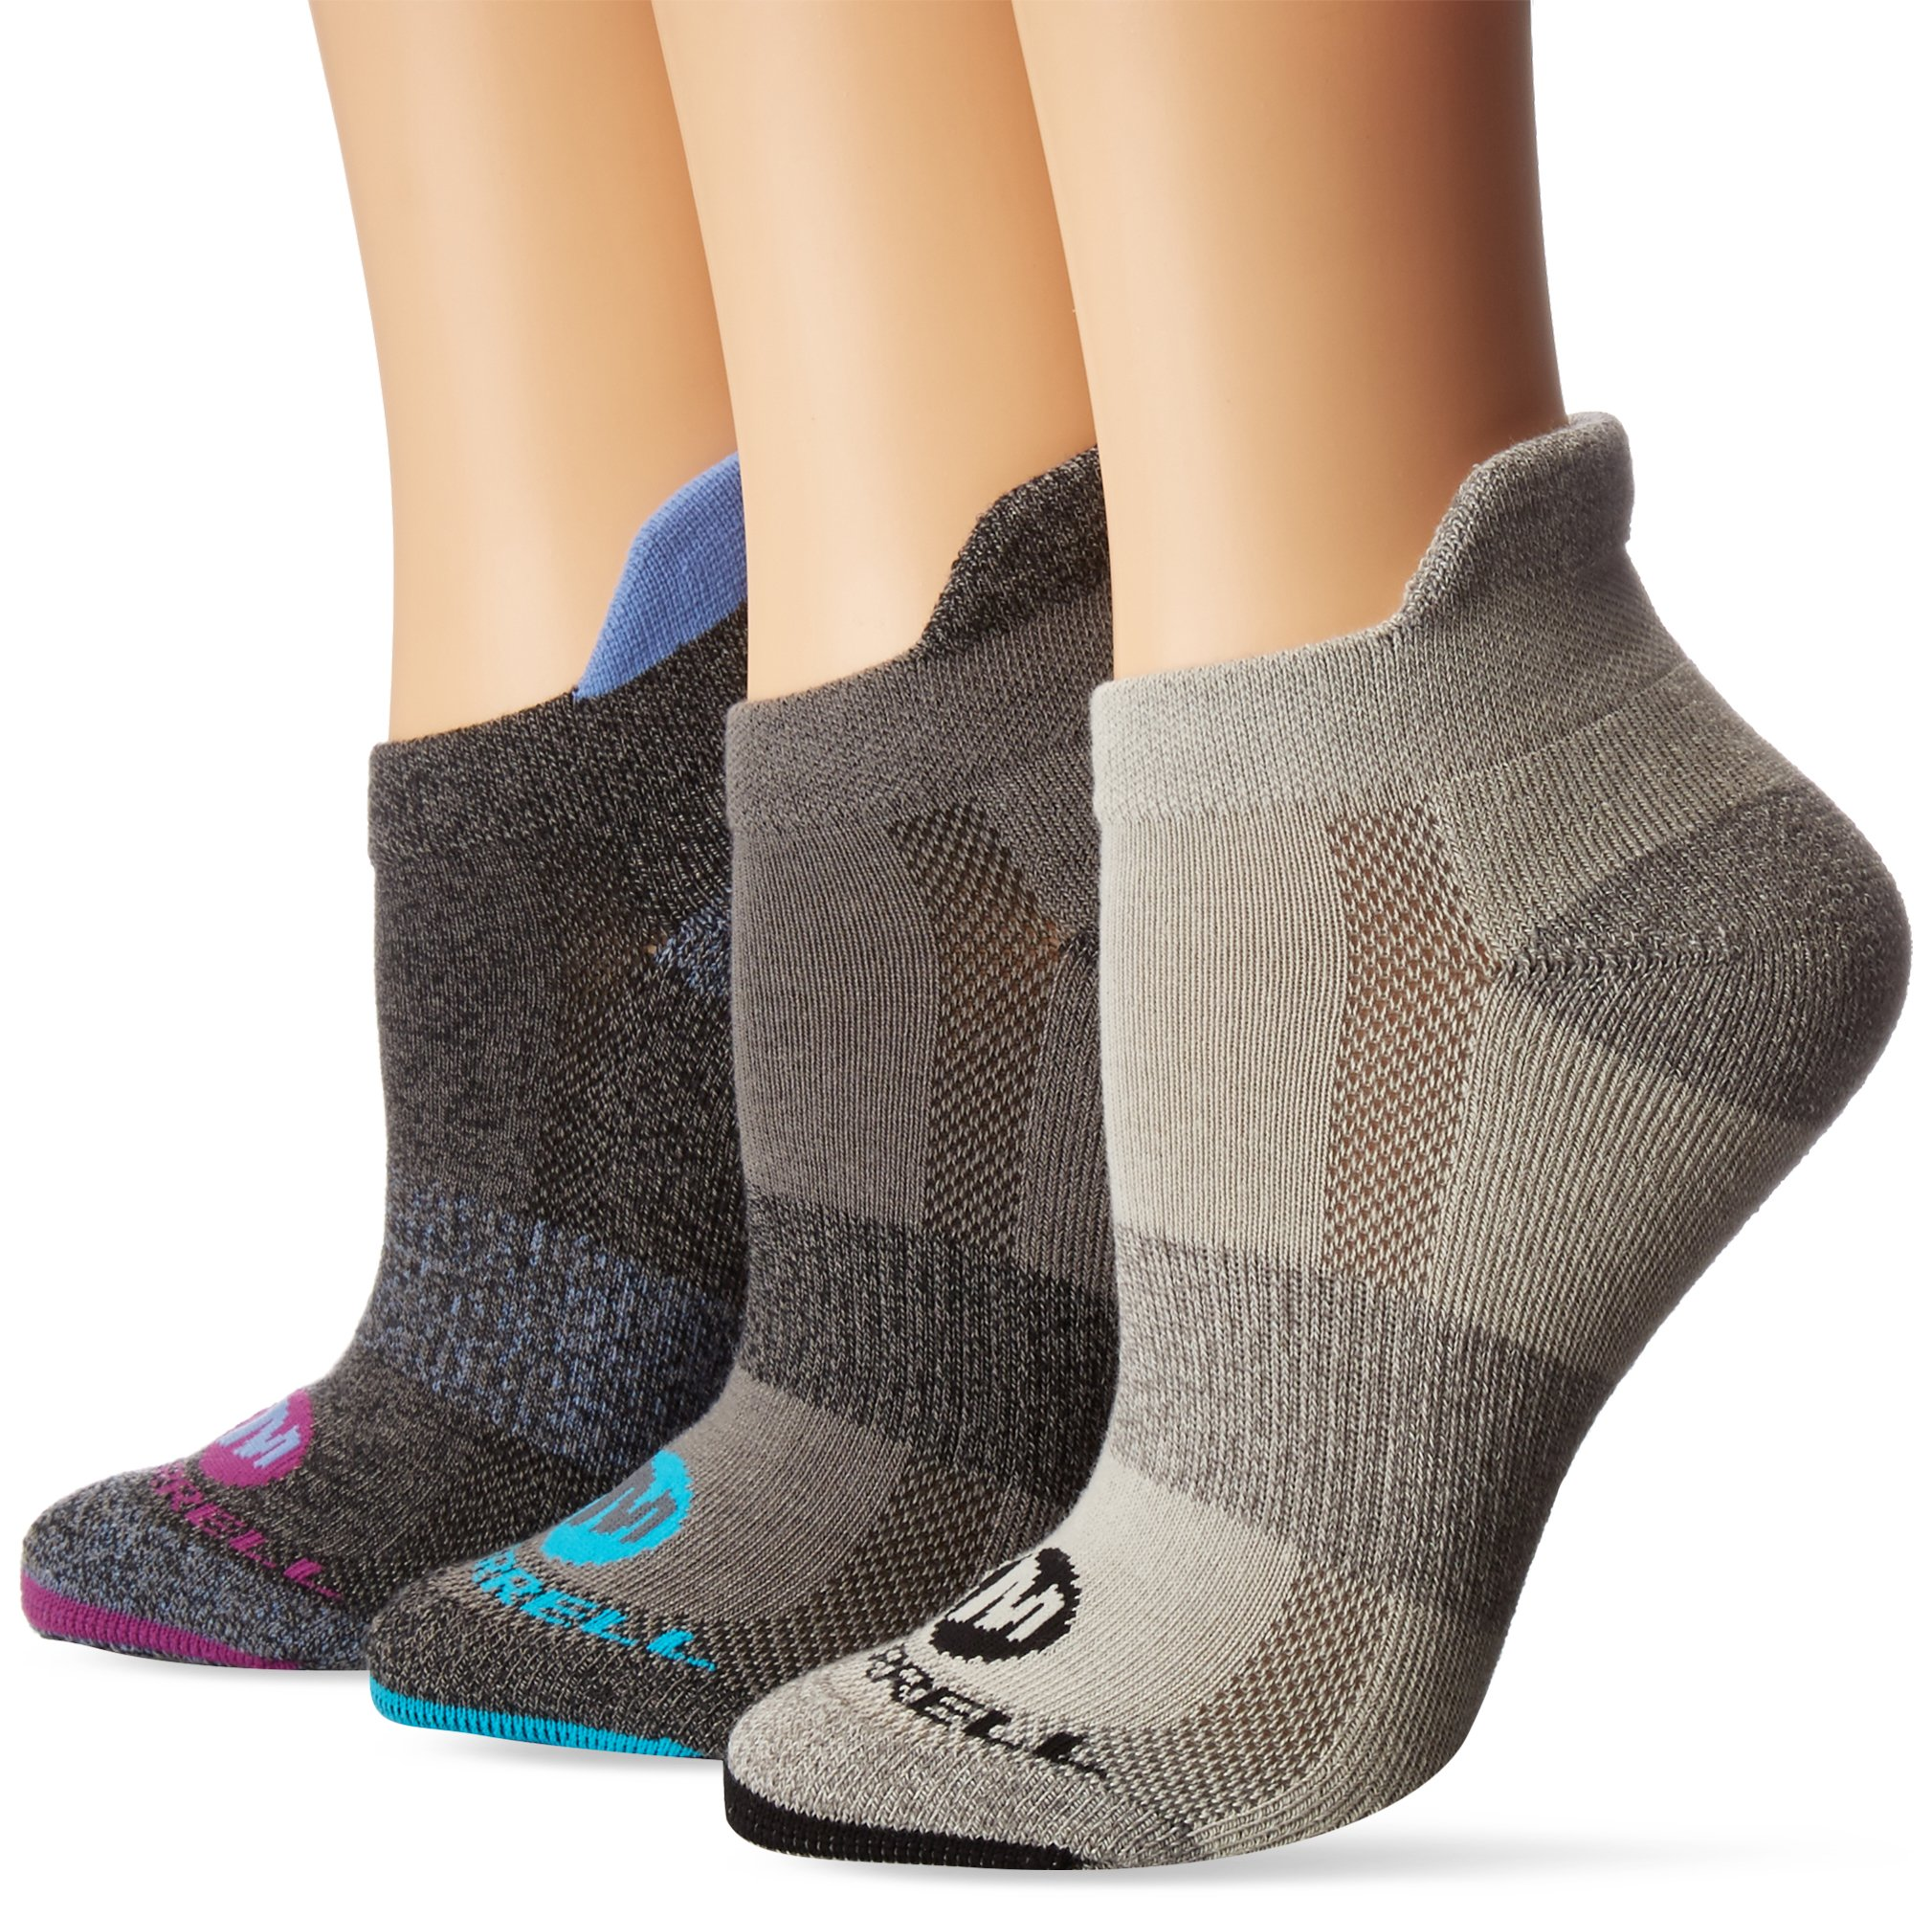 Merrell Women's Low Cut Tab 3 Pack Sock, Black Marl, s/m